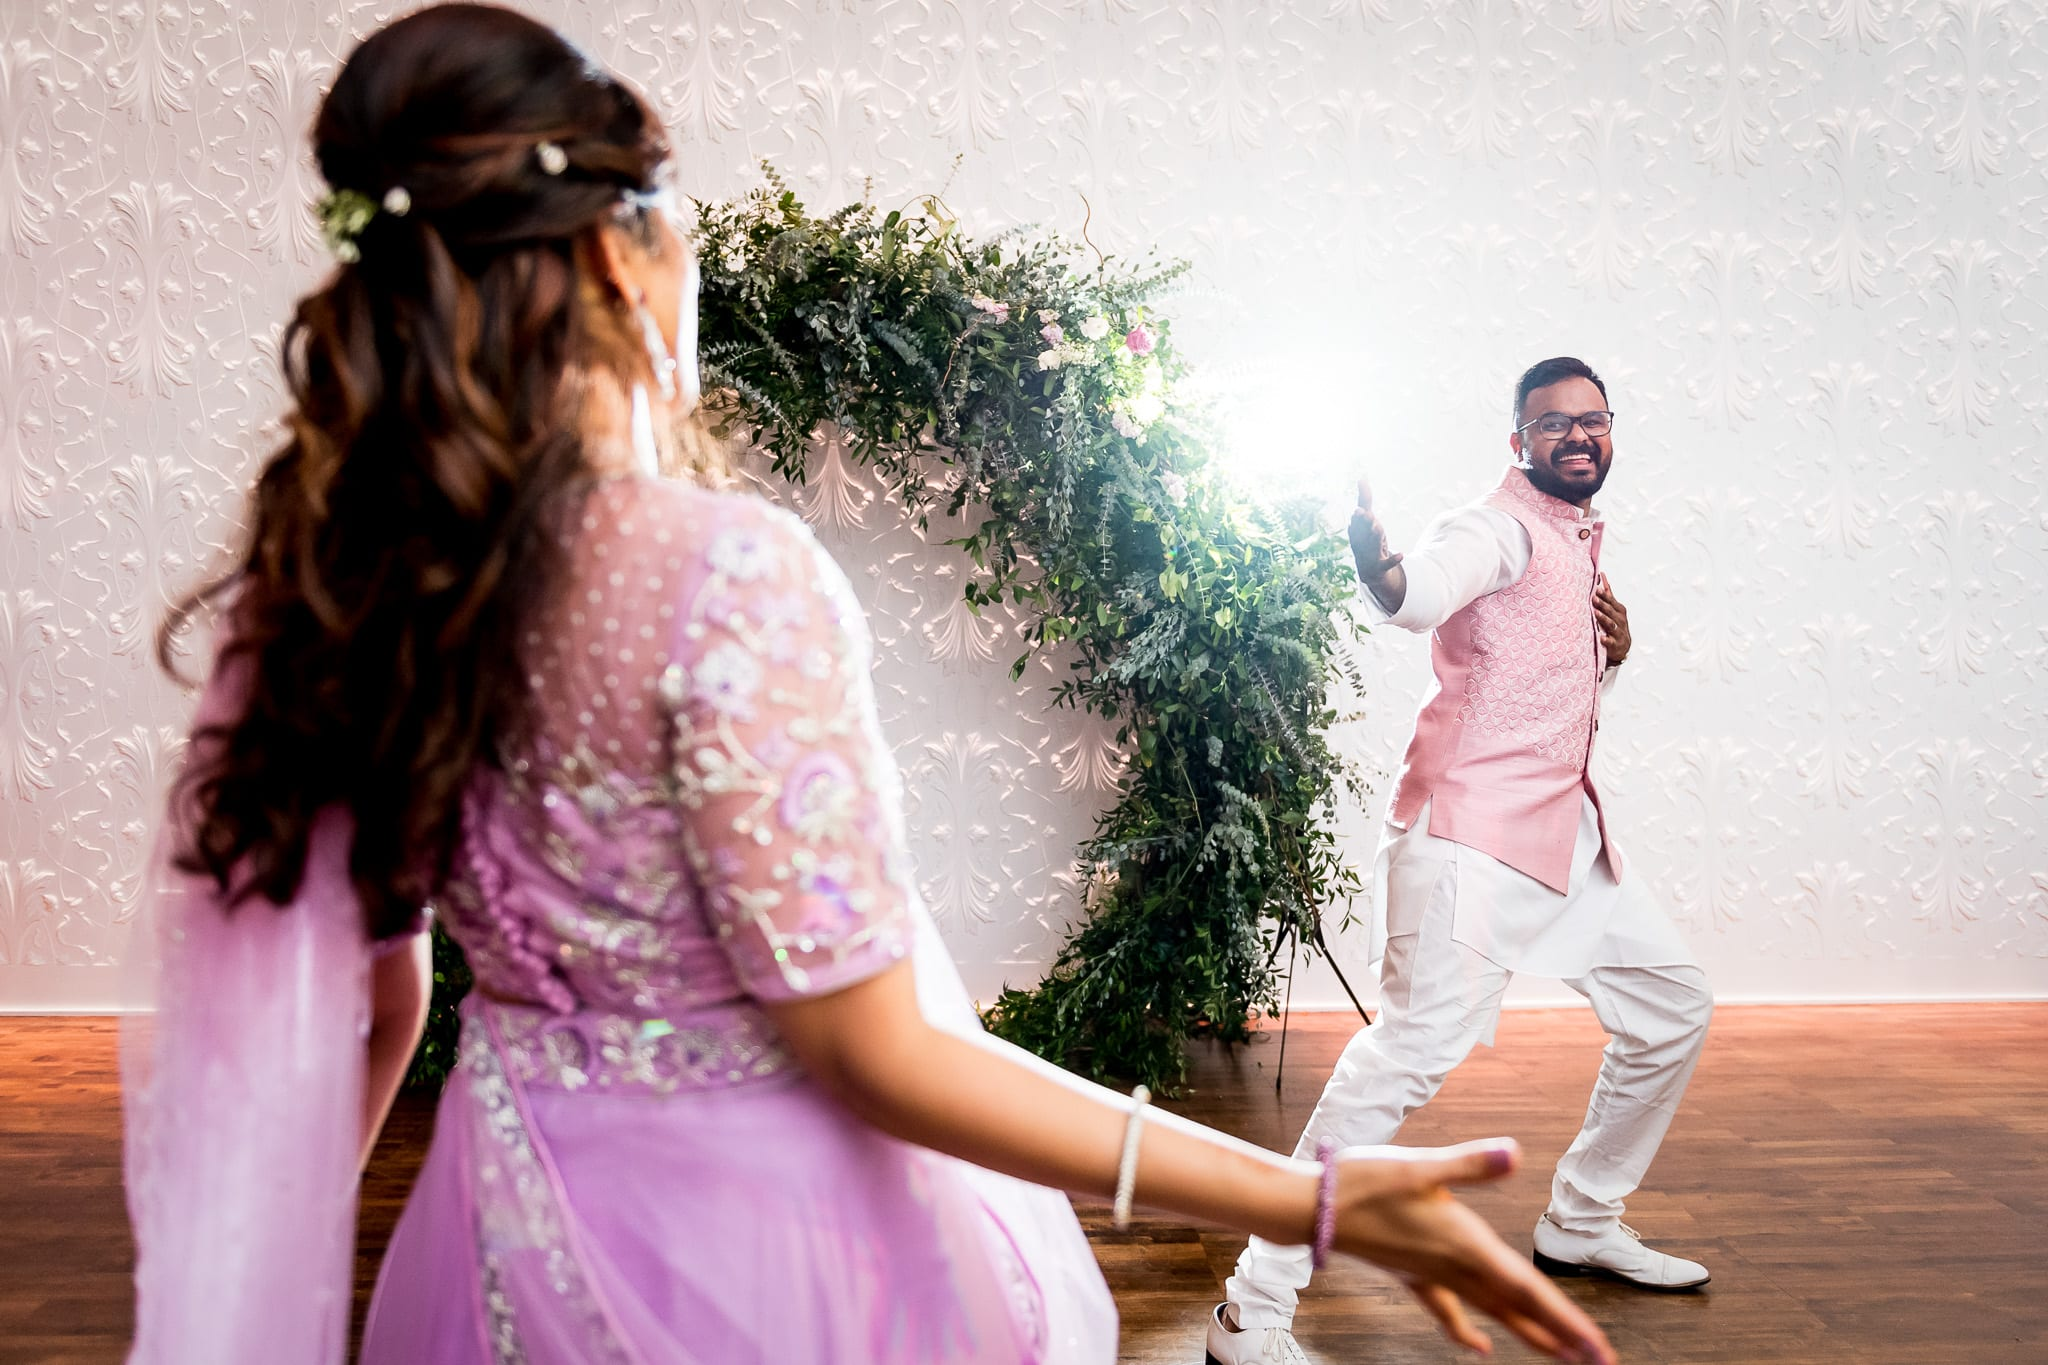 Bride and groom passionately dancing